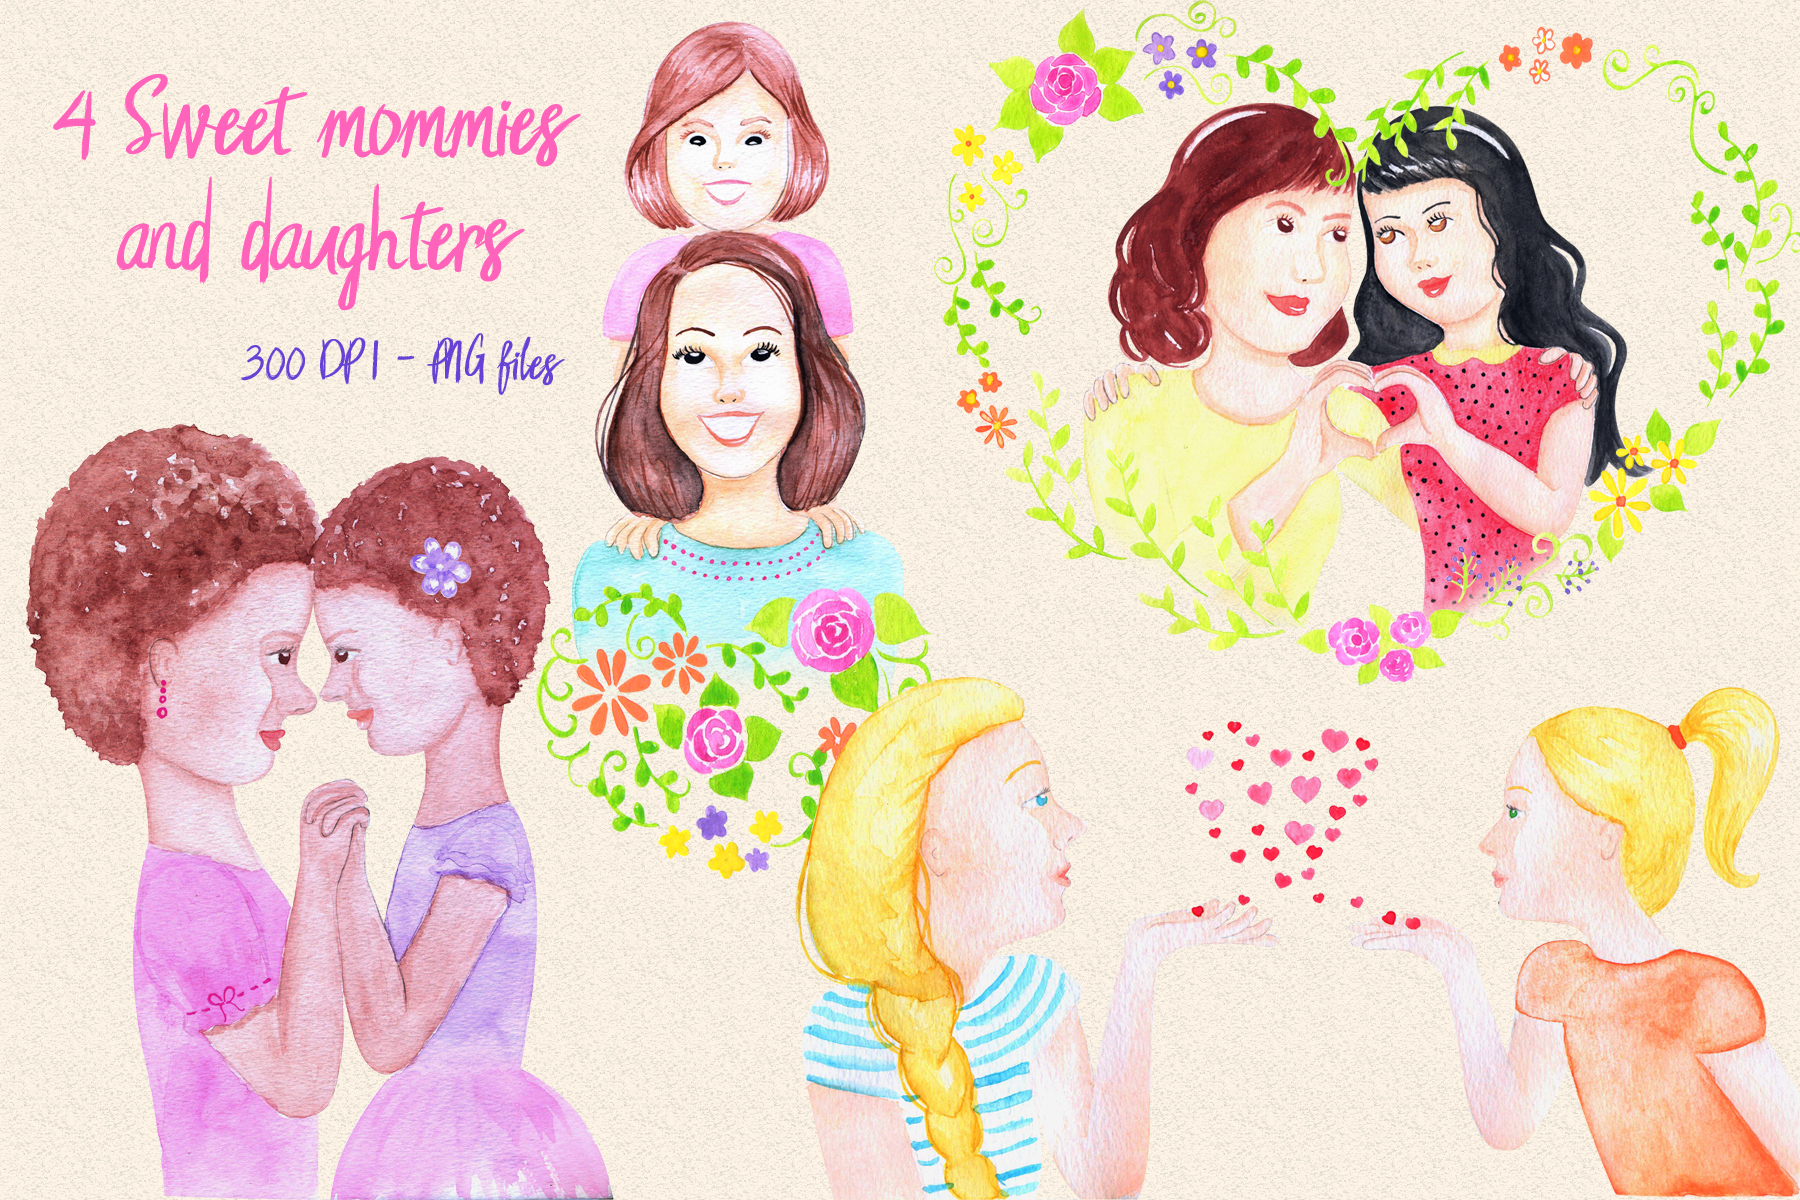 MOMMY SWEET MOMMY - watercolor handmade clipart collection - 20 elements example image 3